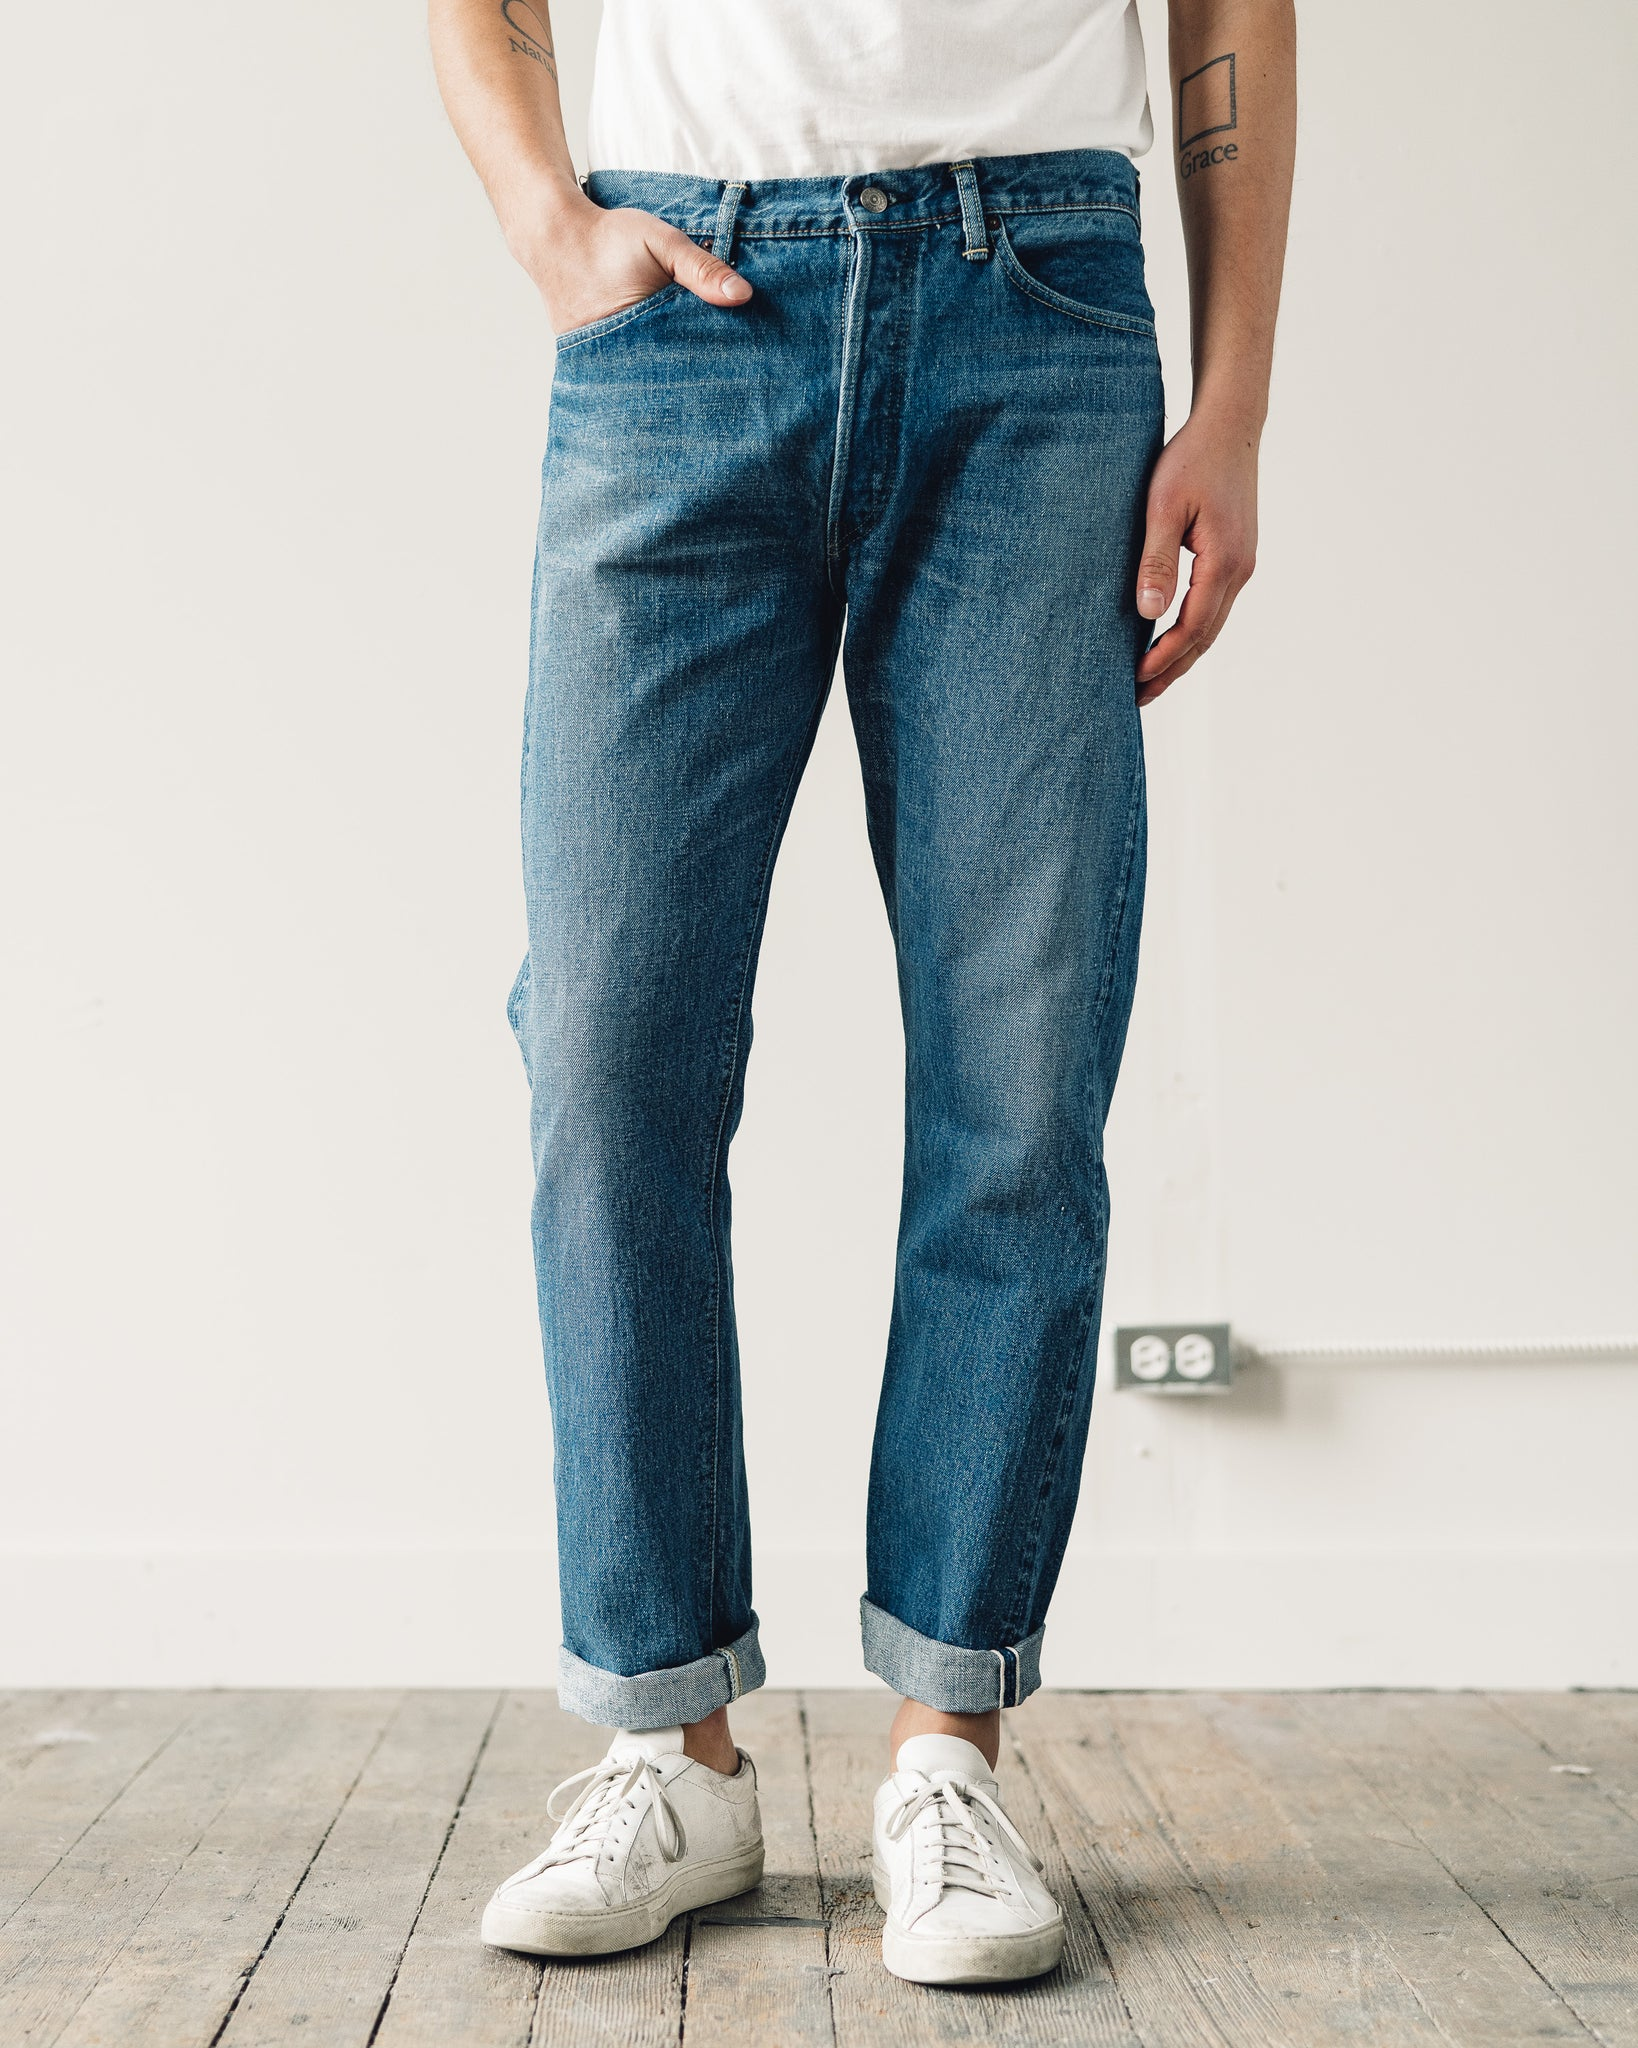 Orslow 105 Standard Denim, 2 Year Wash